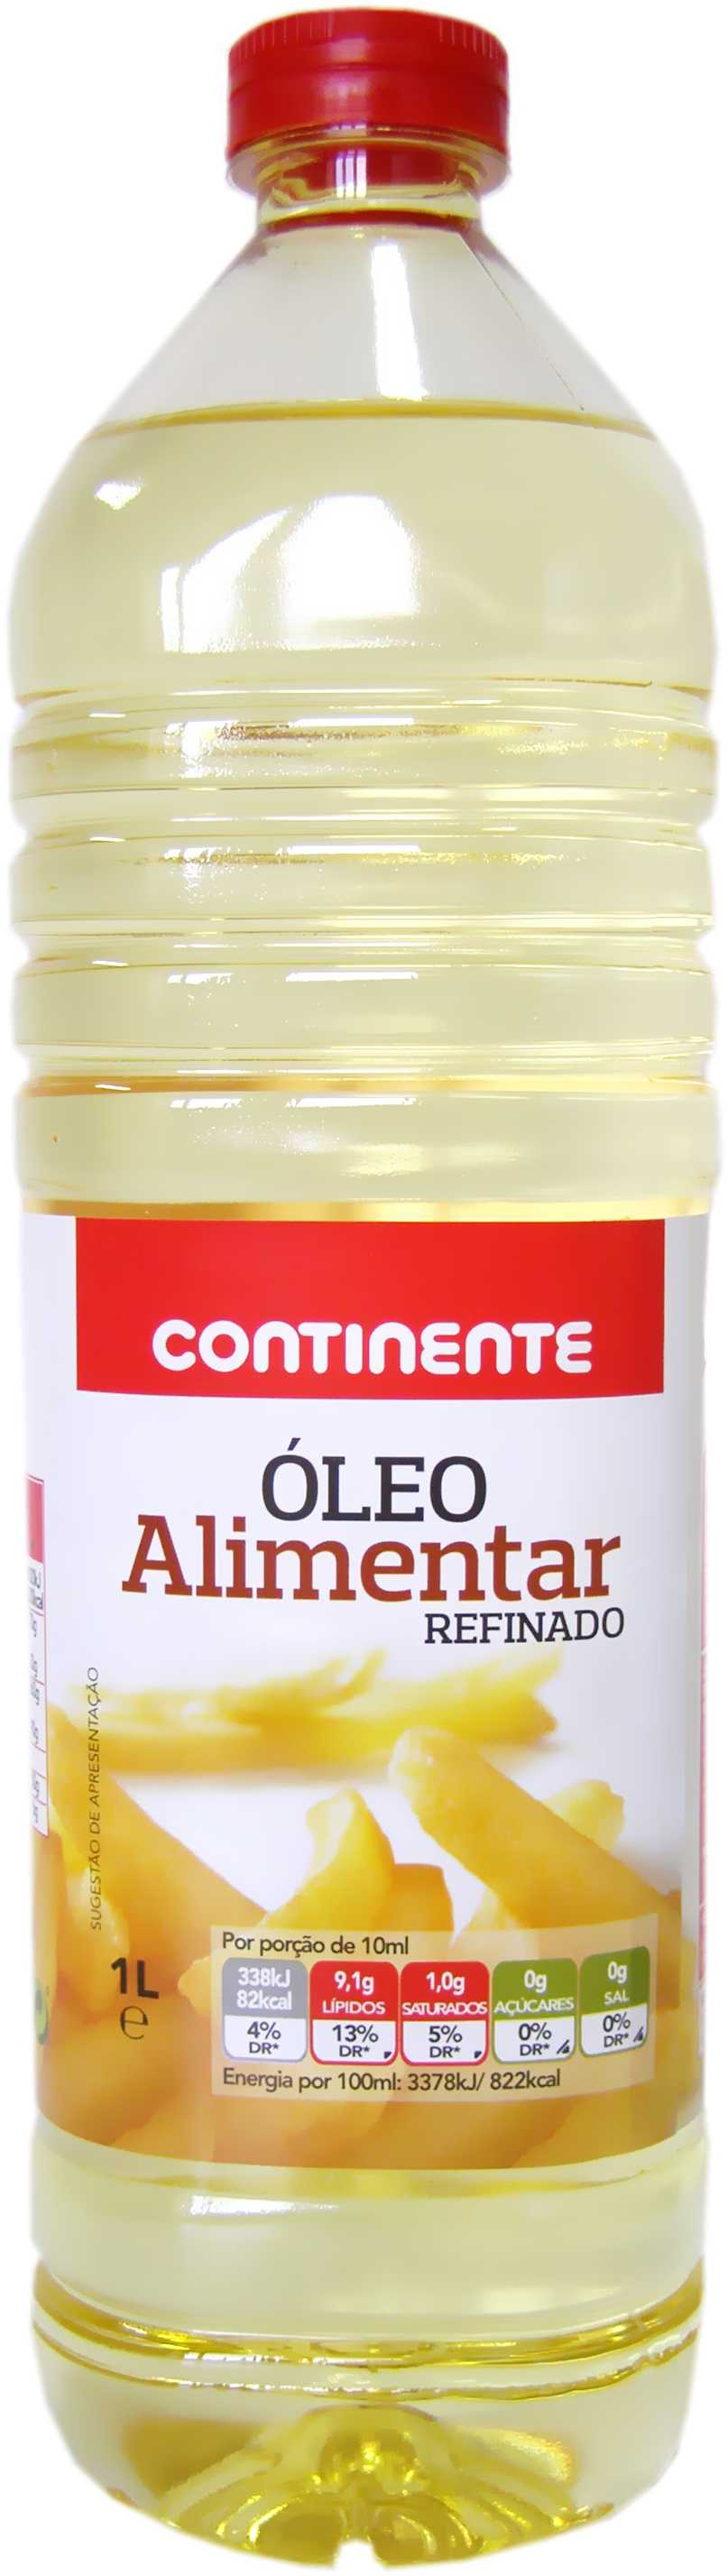 COOKING	   OIL CONTINENTE	   1LT